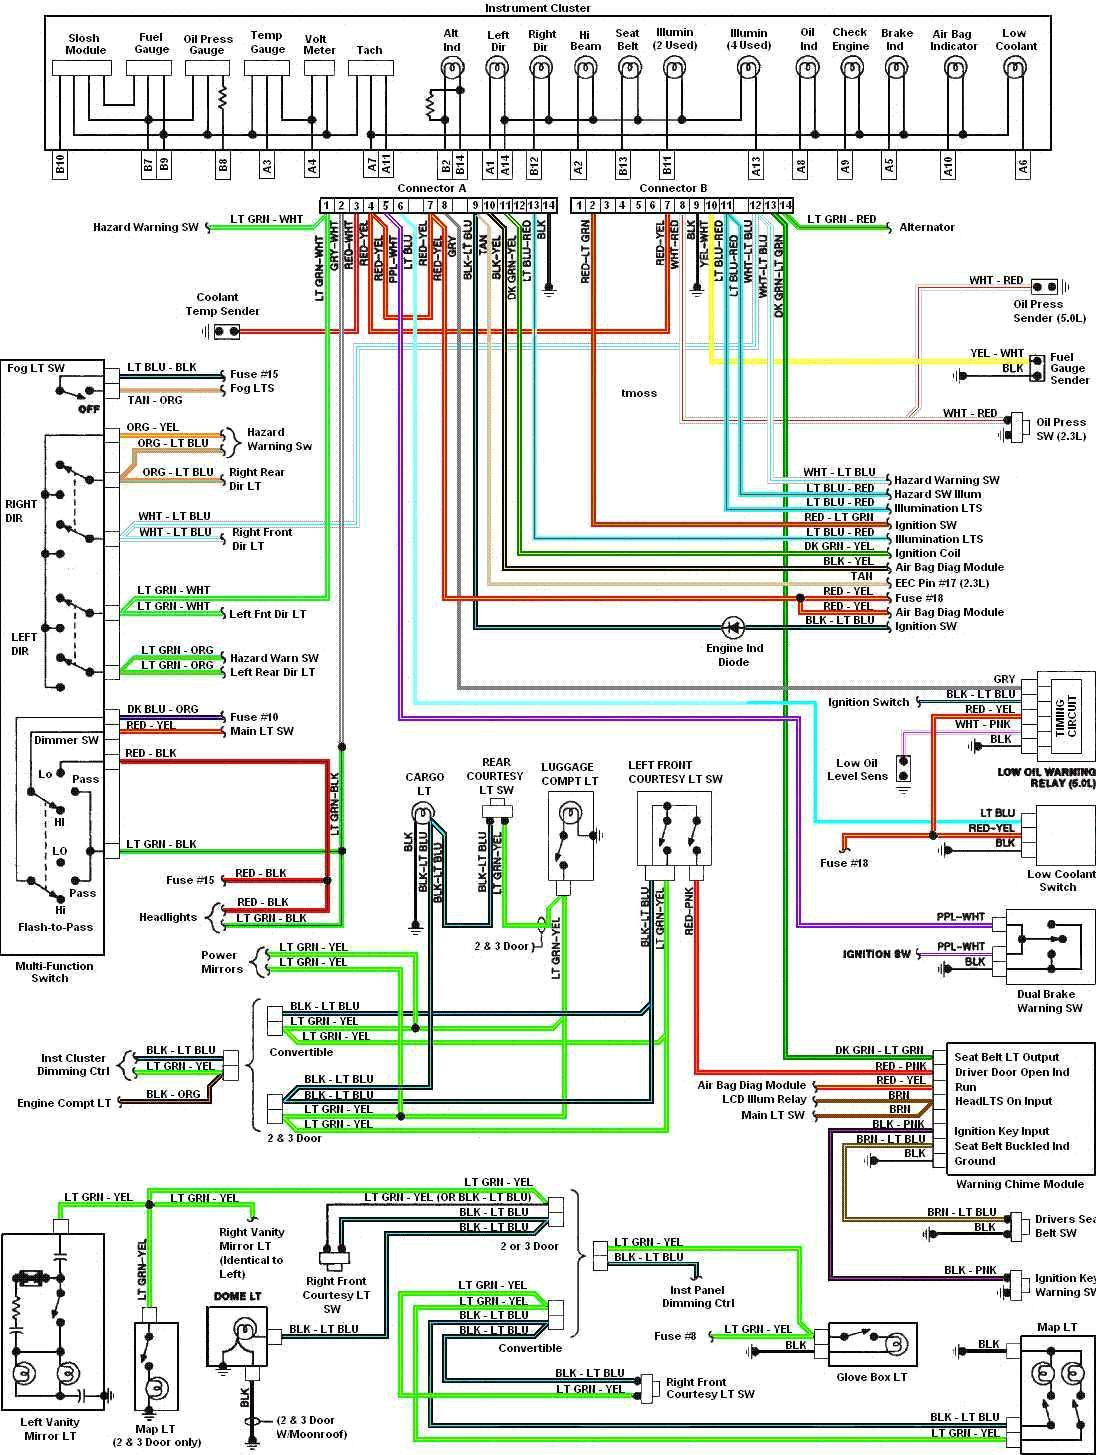 Ford Motorhome Wiring Diagram On Diagram Of 1997 Ford F 350 Sel | #1 on